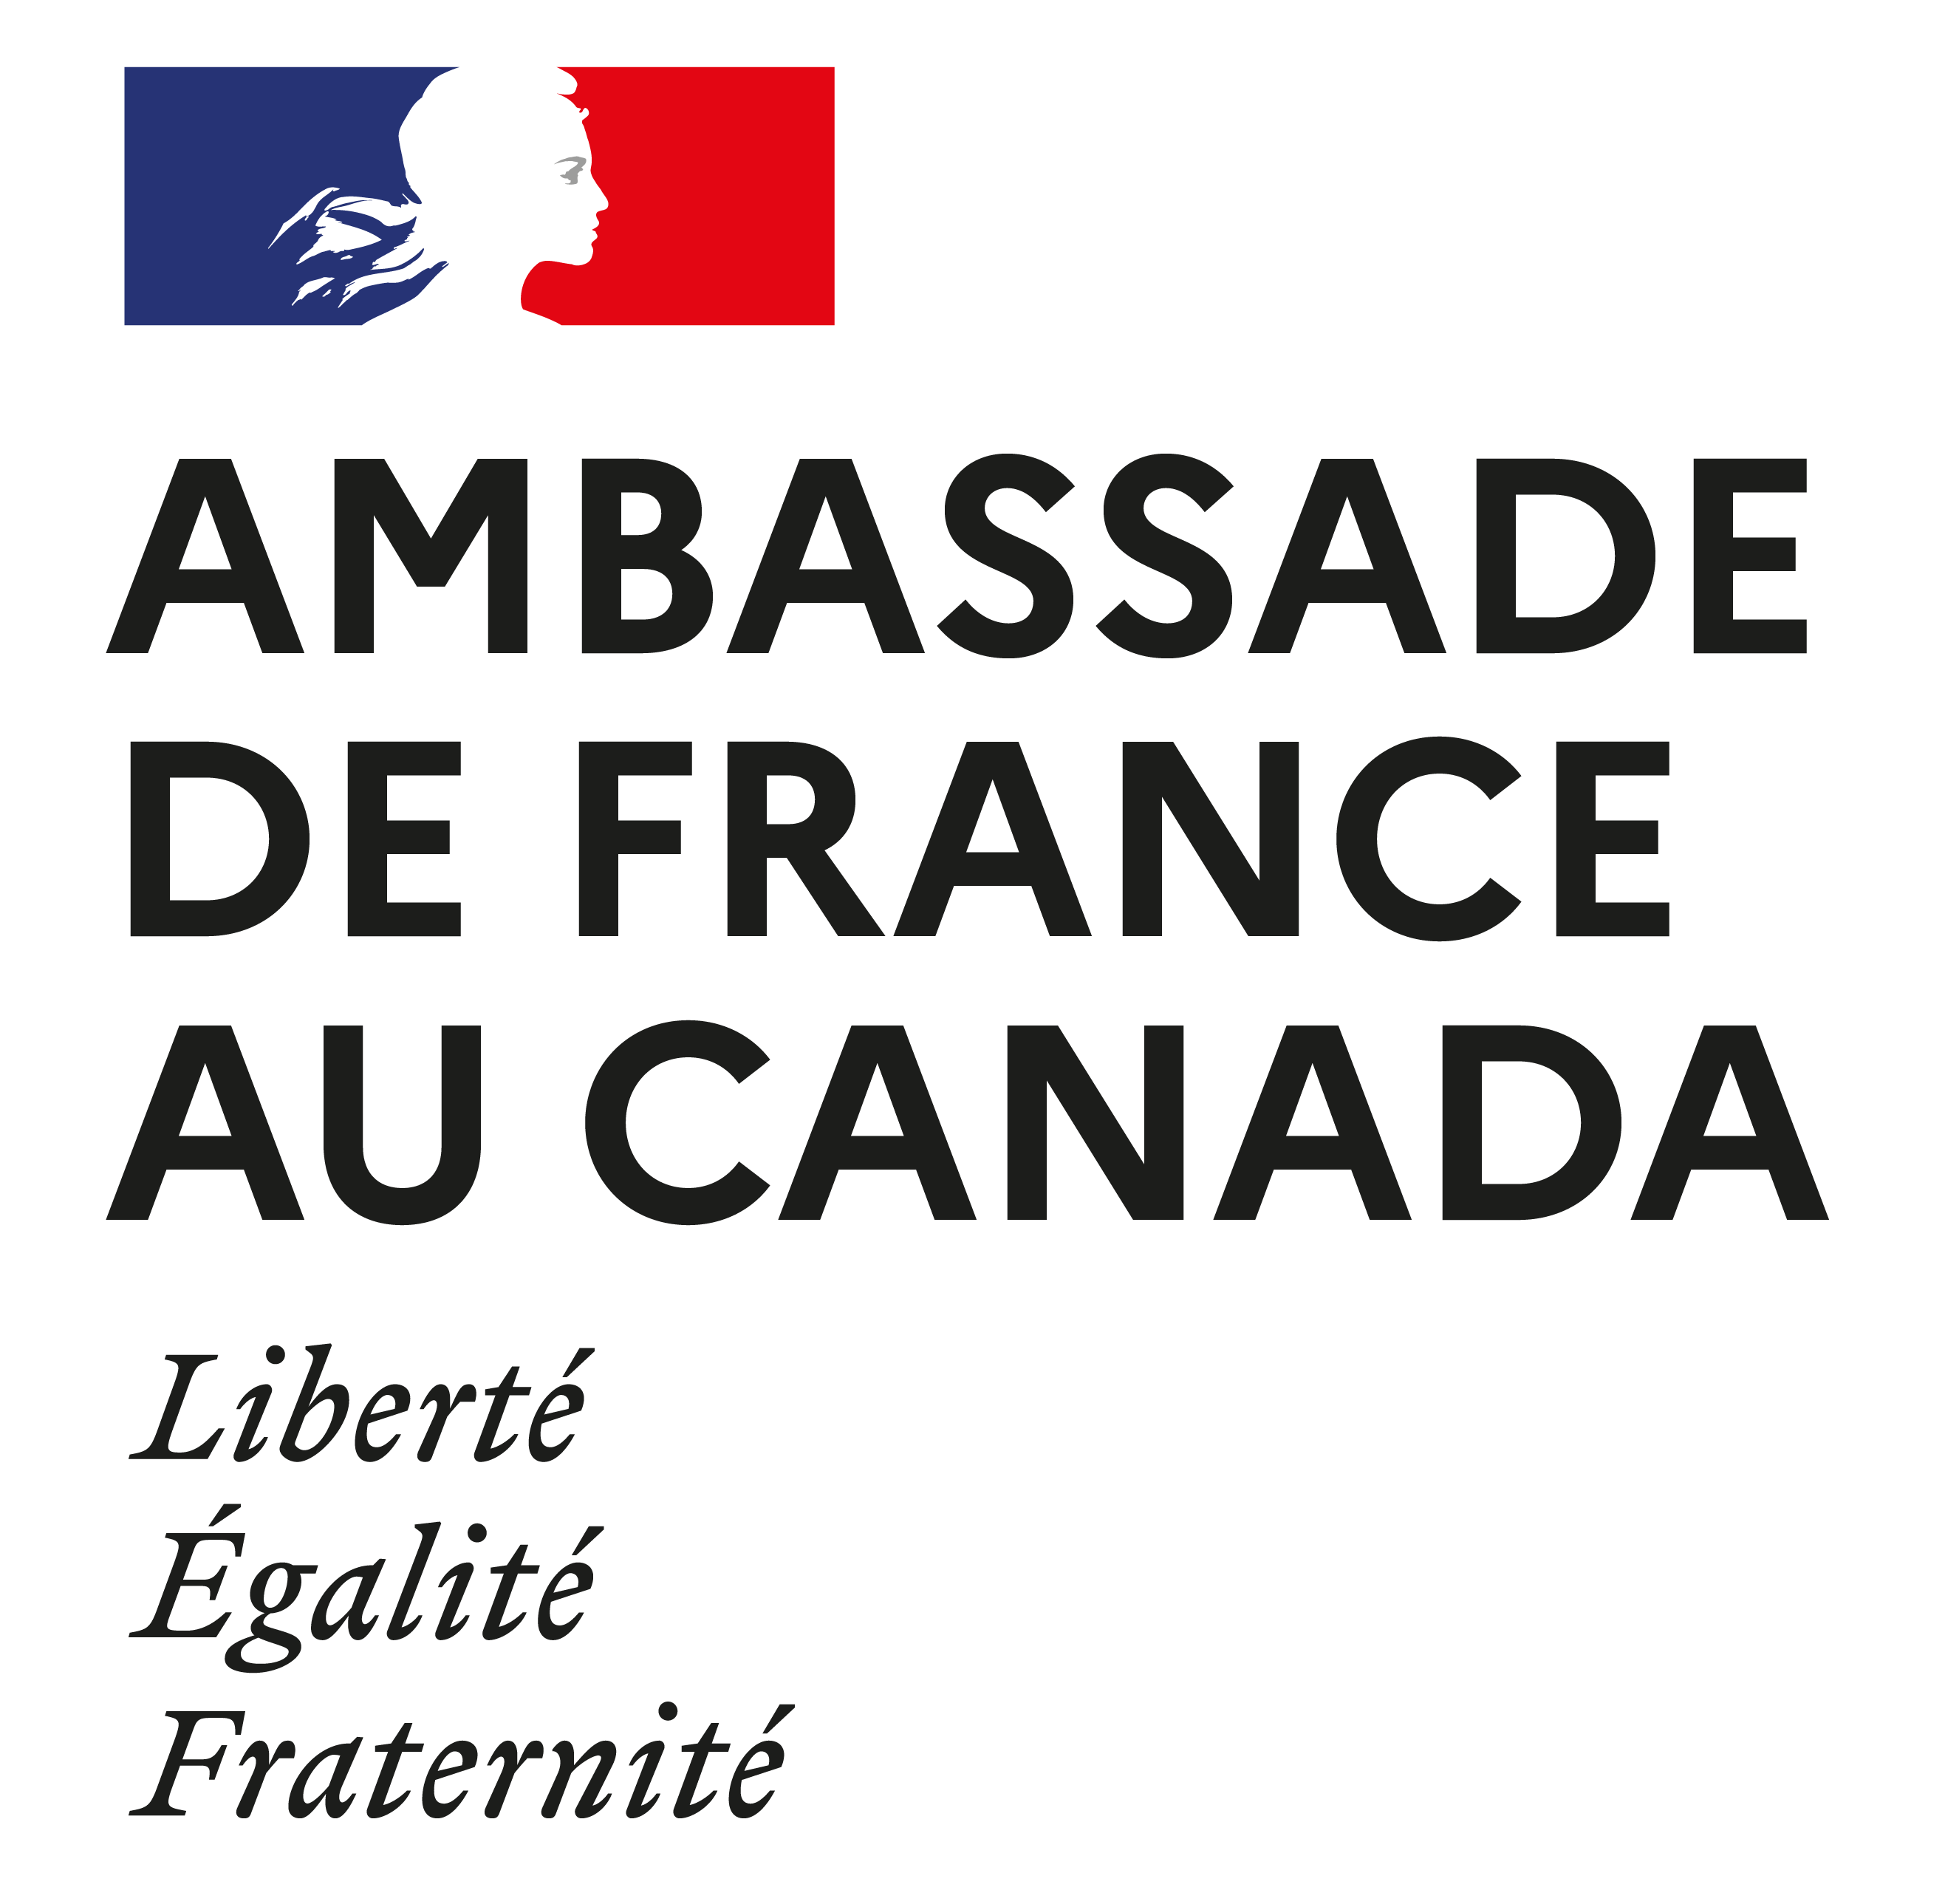 The Embassy of France logo